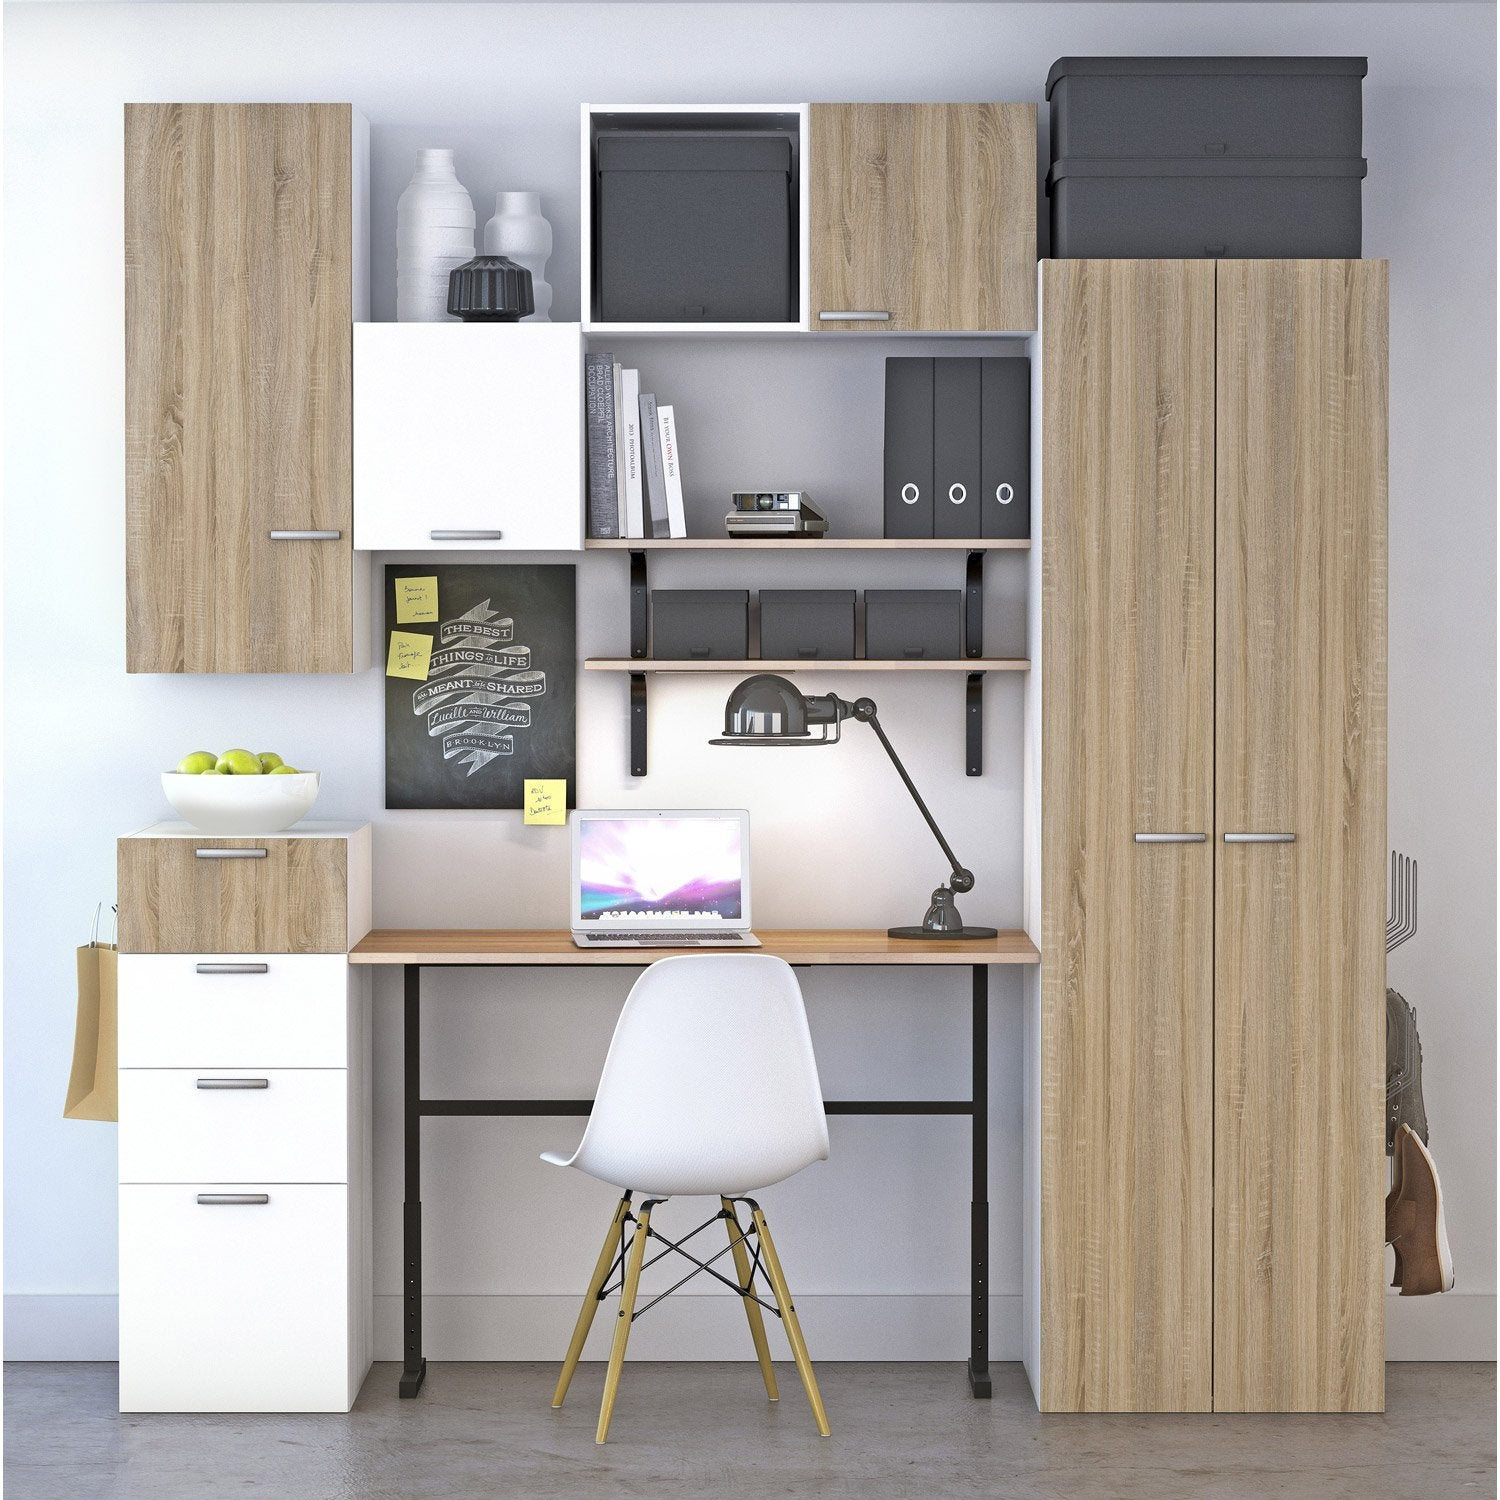 bureau spaceo home effet chene leroy merlin With toile jardin leroy merlin 7 bureau spaceo home effet chene leroy merlin